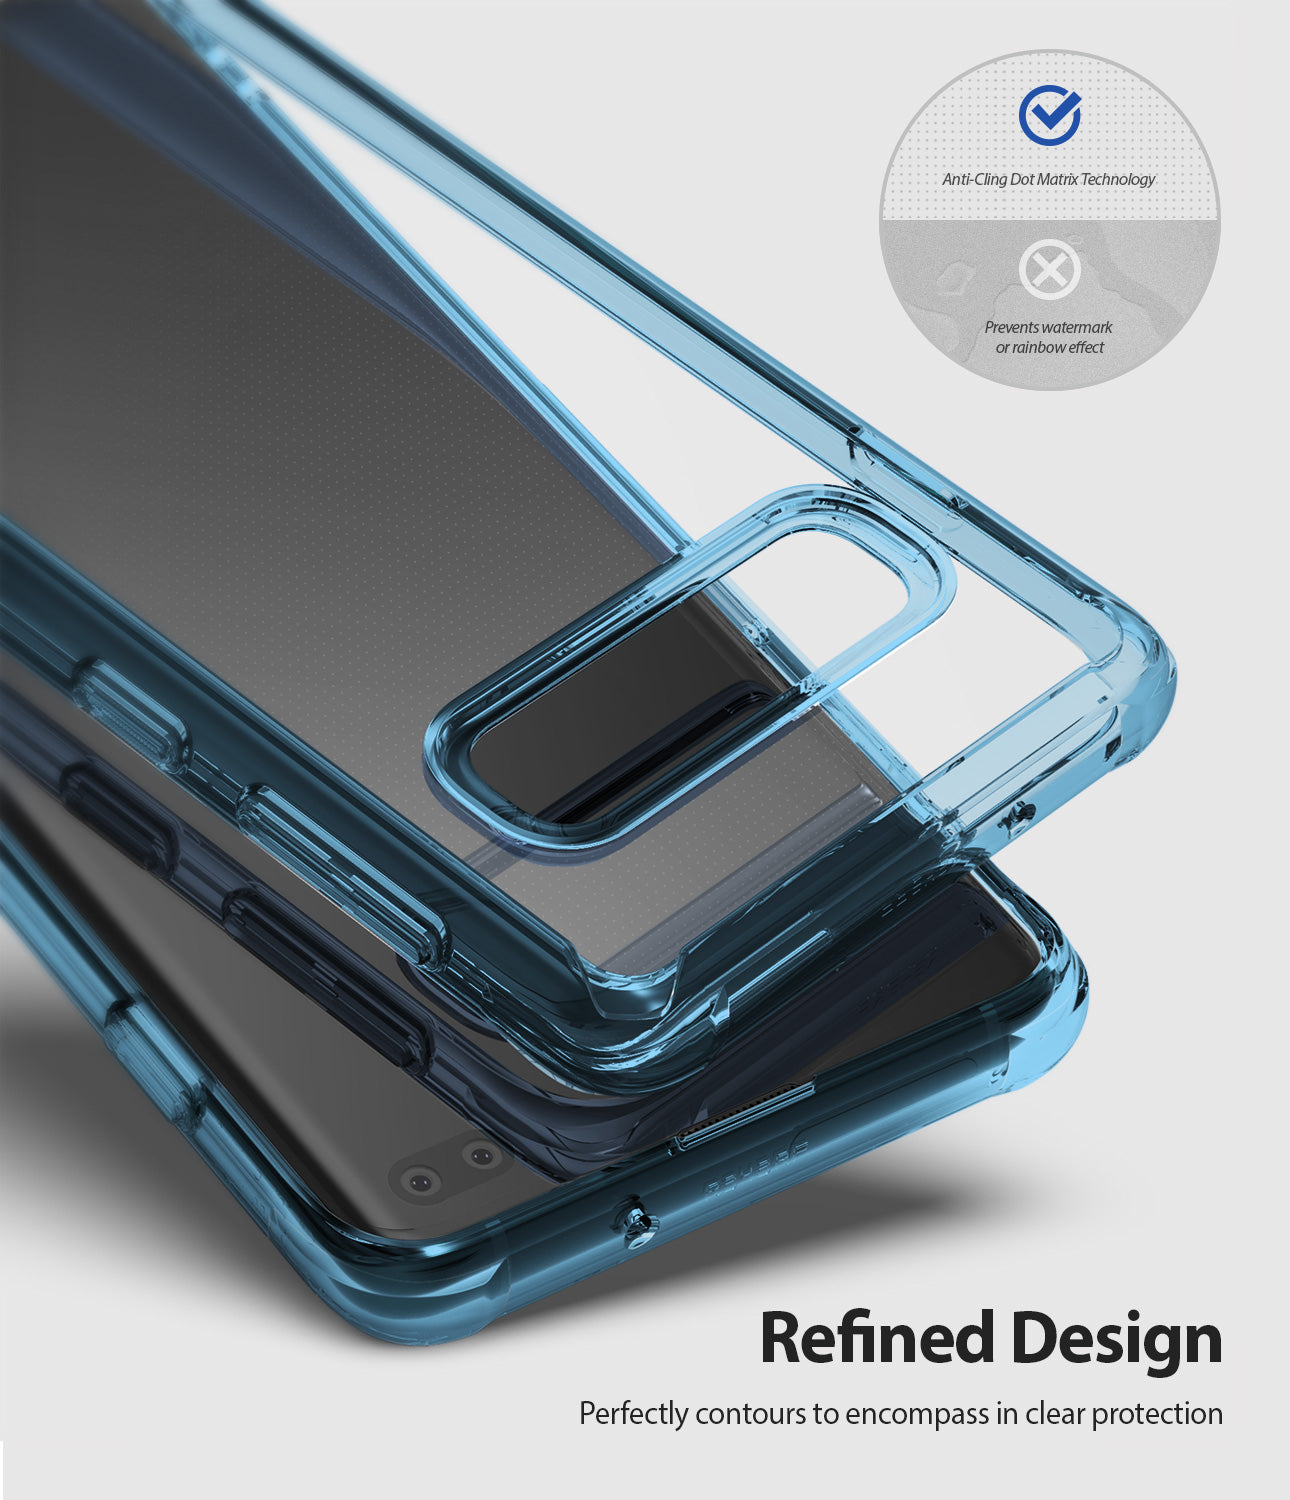 refined design perfectly contours to encompass in clear protection